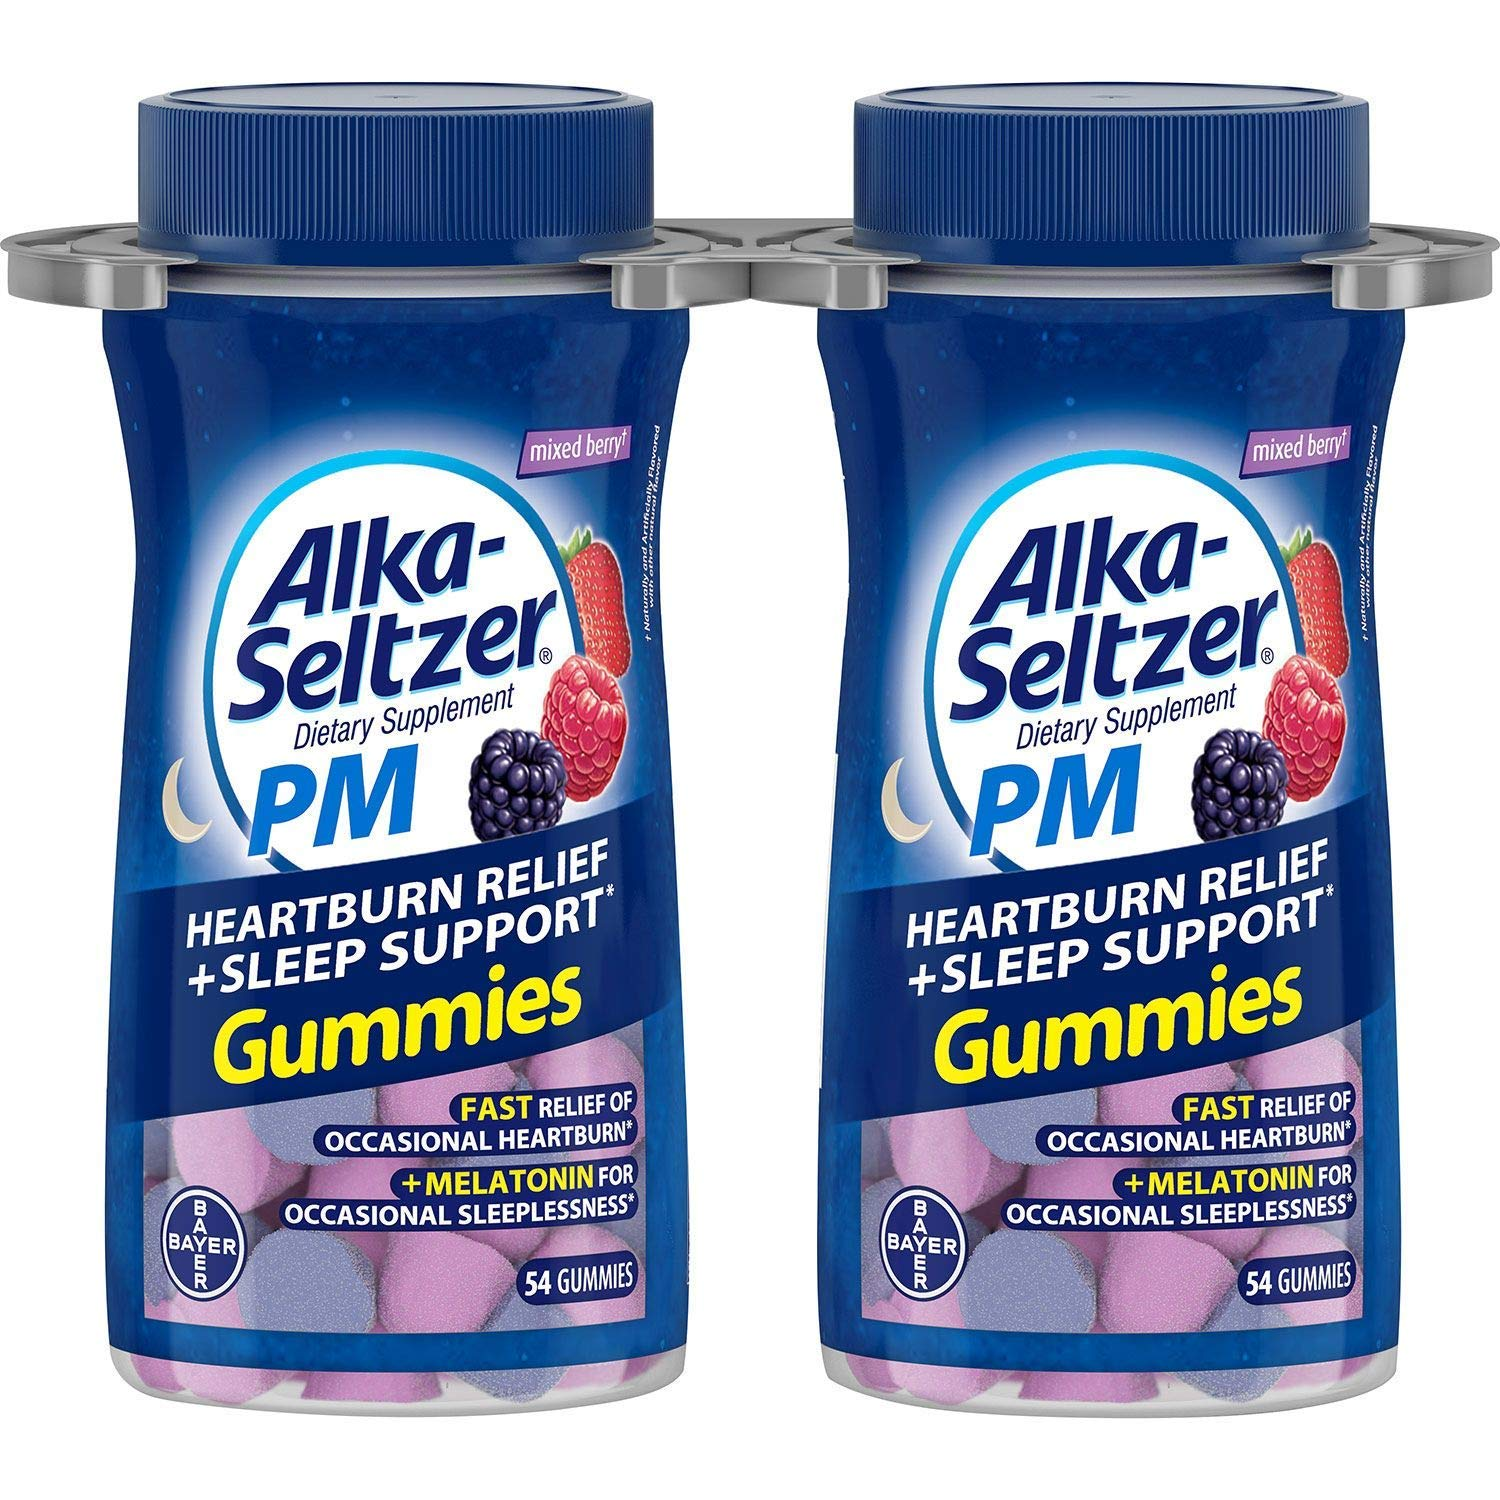 Alka-Seltzer PM Heartburn Relief + Sleep Support Gummies, Mixed Berry (108 ct.) by Alka-Seltzer